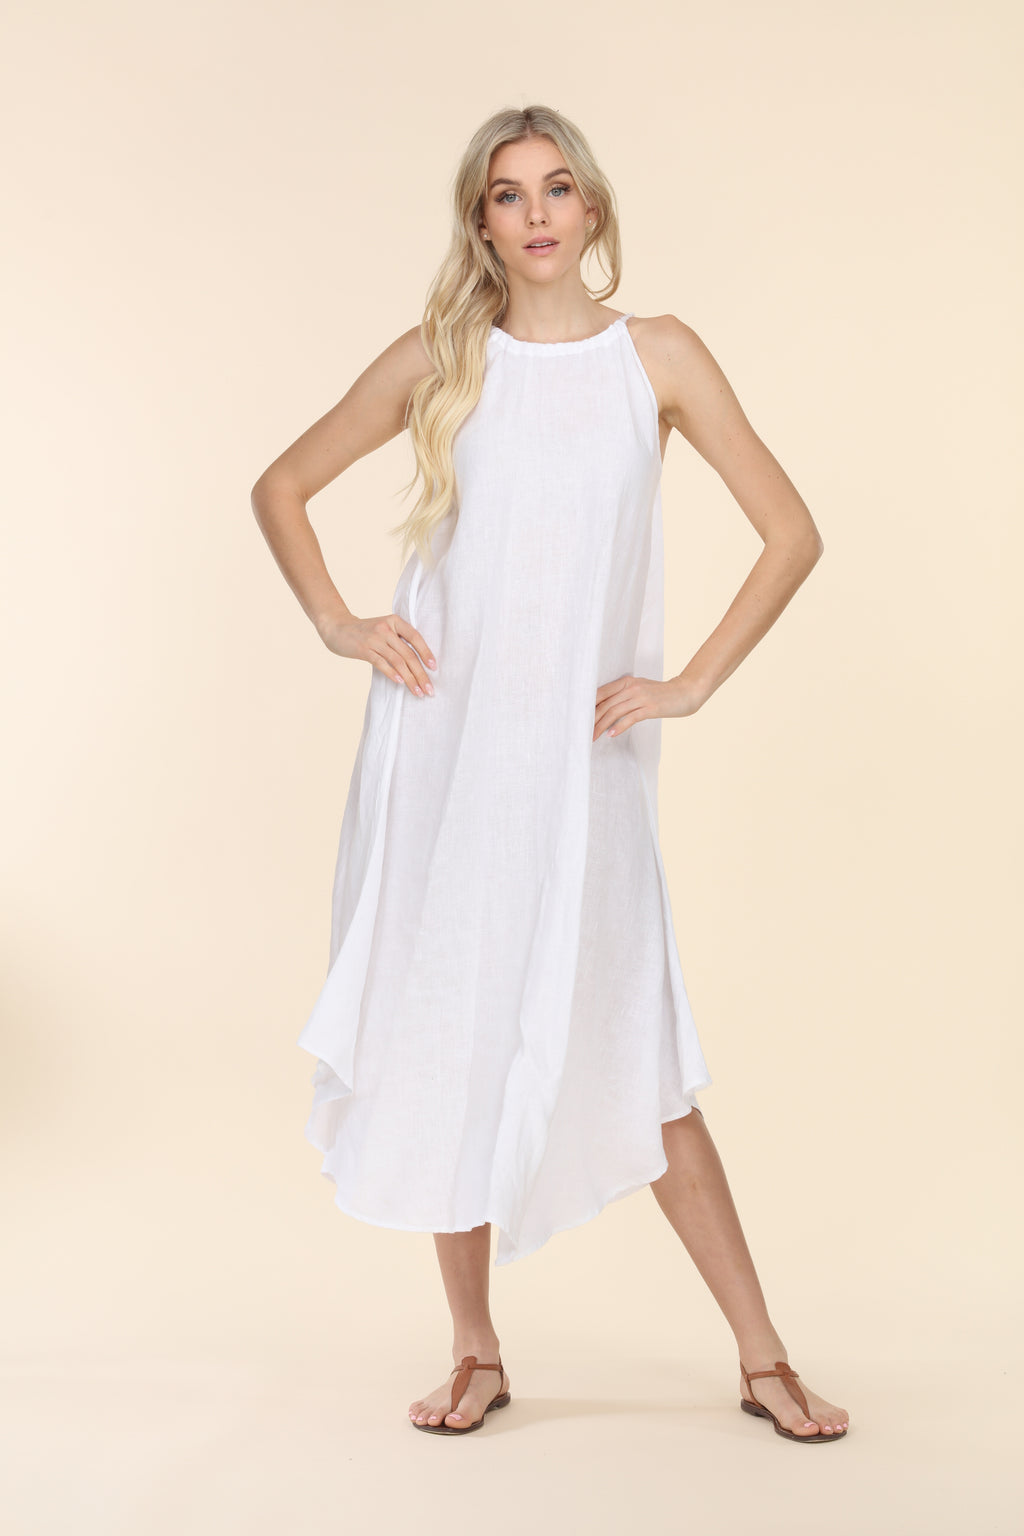 Linen Summer Dress - White